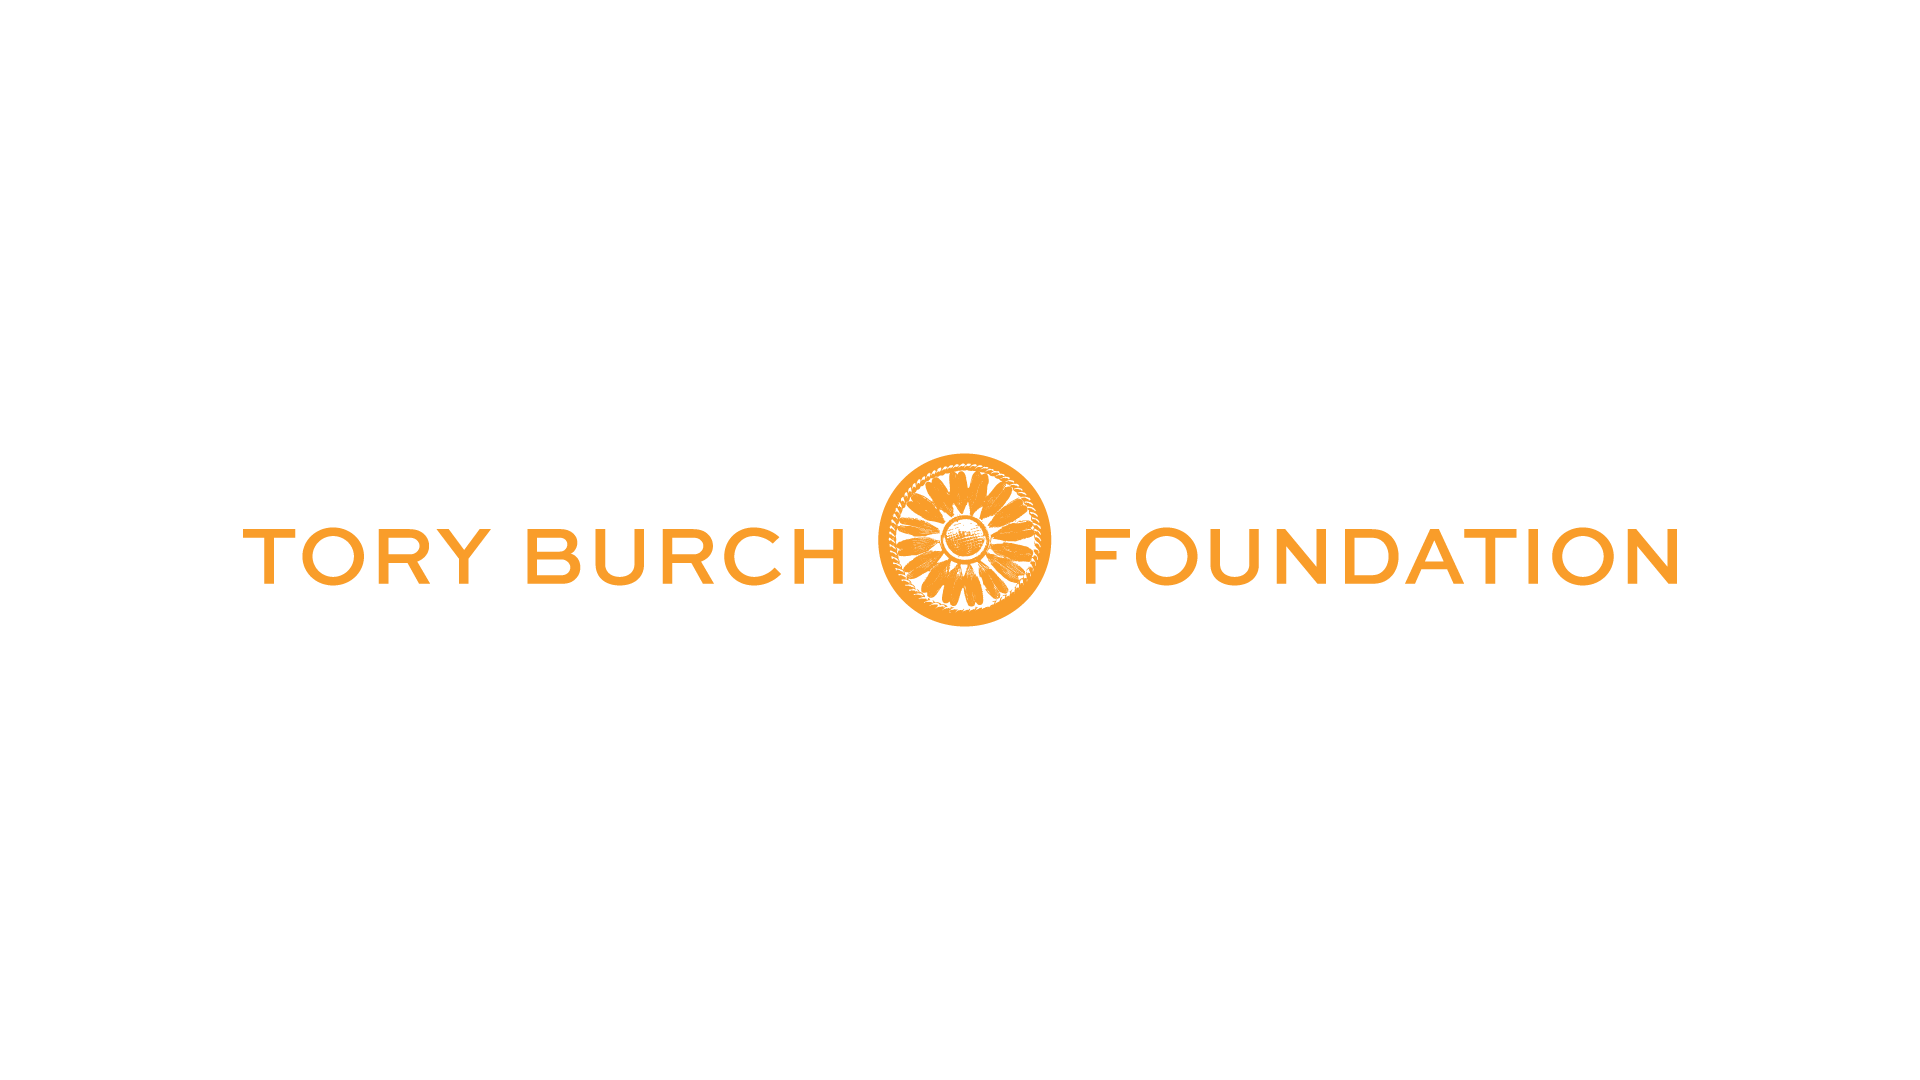 07495b550de2 The Tory Burch Foundation Rings the NYSE Opening Bell®